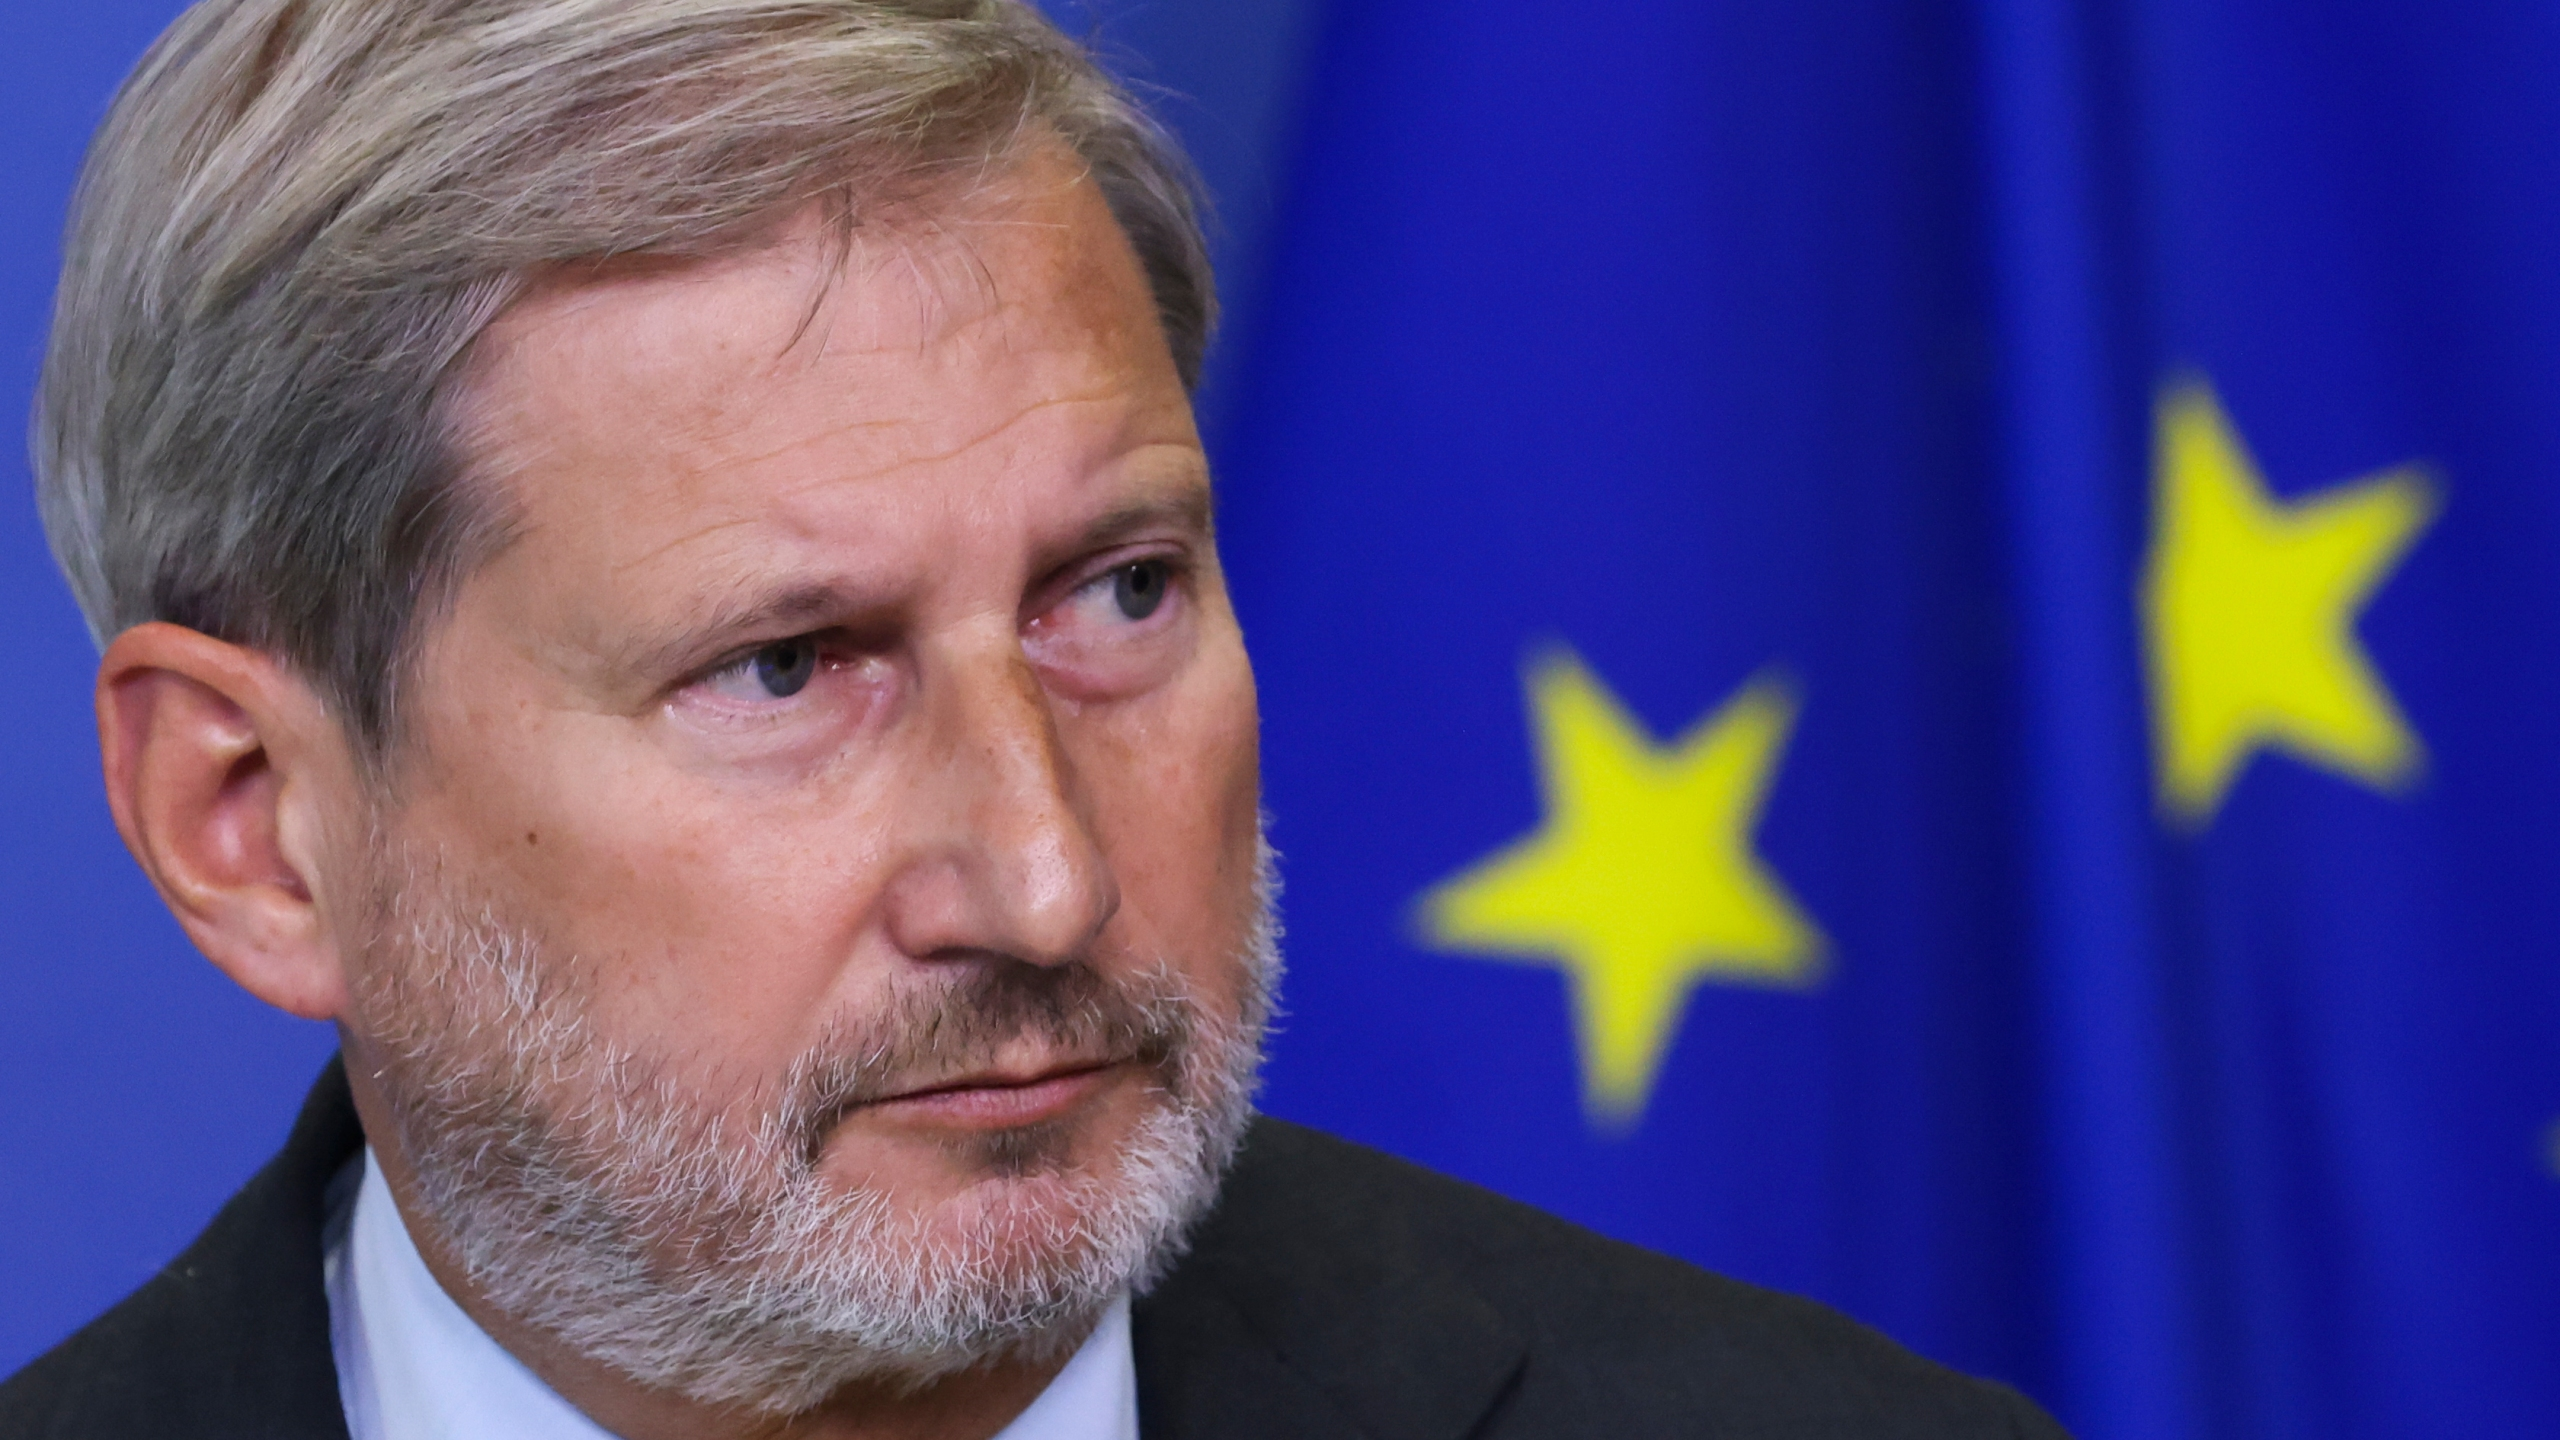 EU Commissioner for Budget Hahn holds a news conference on NextGenerationEU green bonds, in Brussels